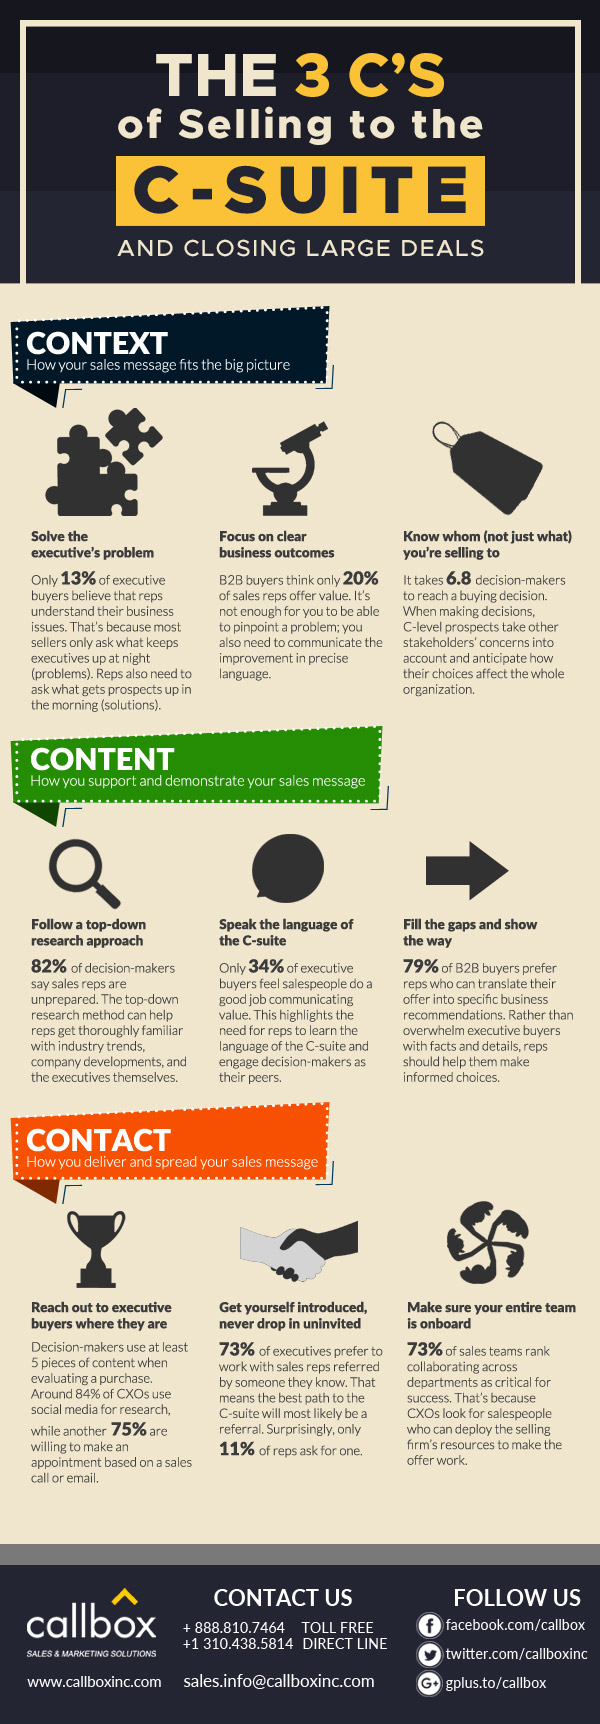 The 3 C's of Selling to the C-Suite and Closing Large Deals [INFOGRAPHIC]